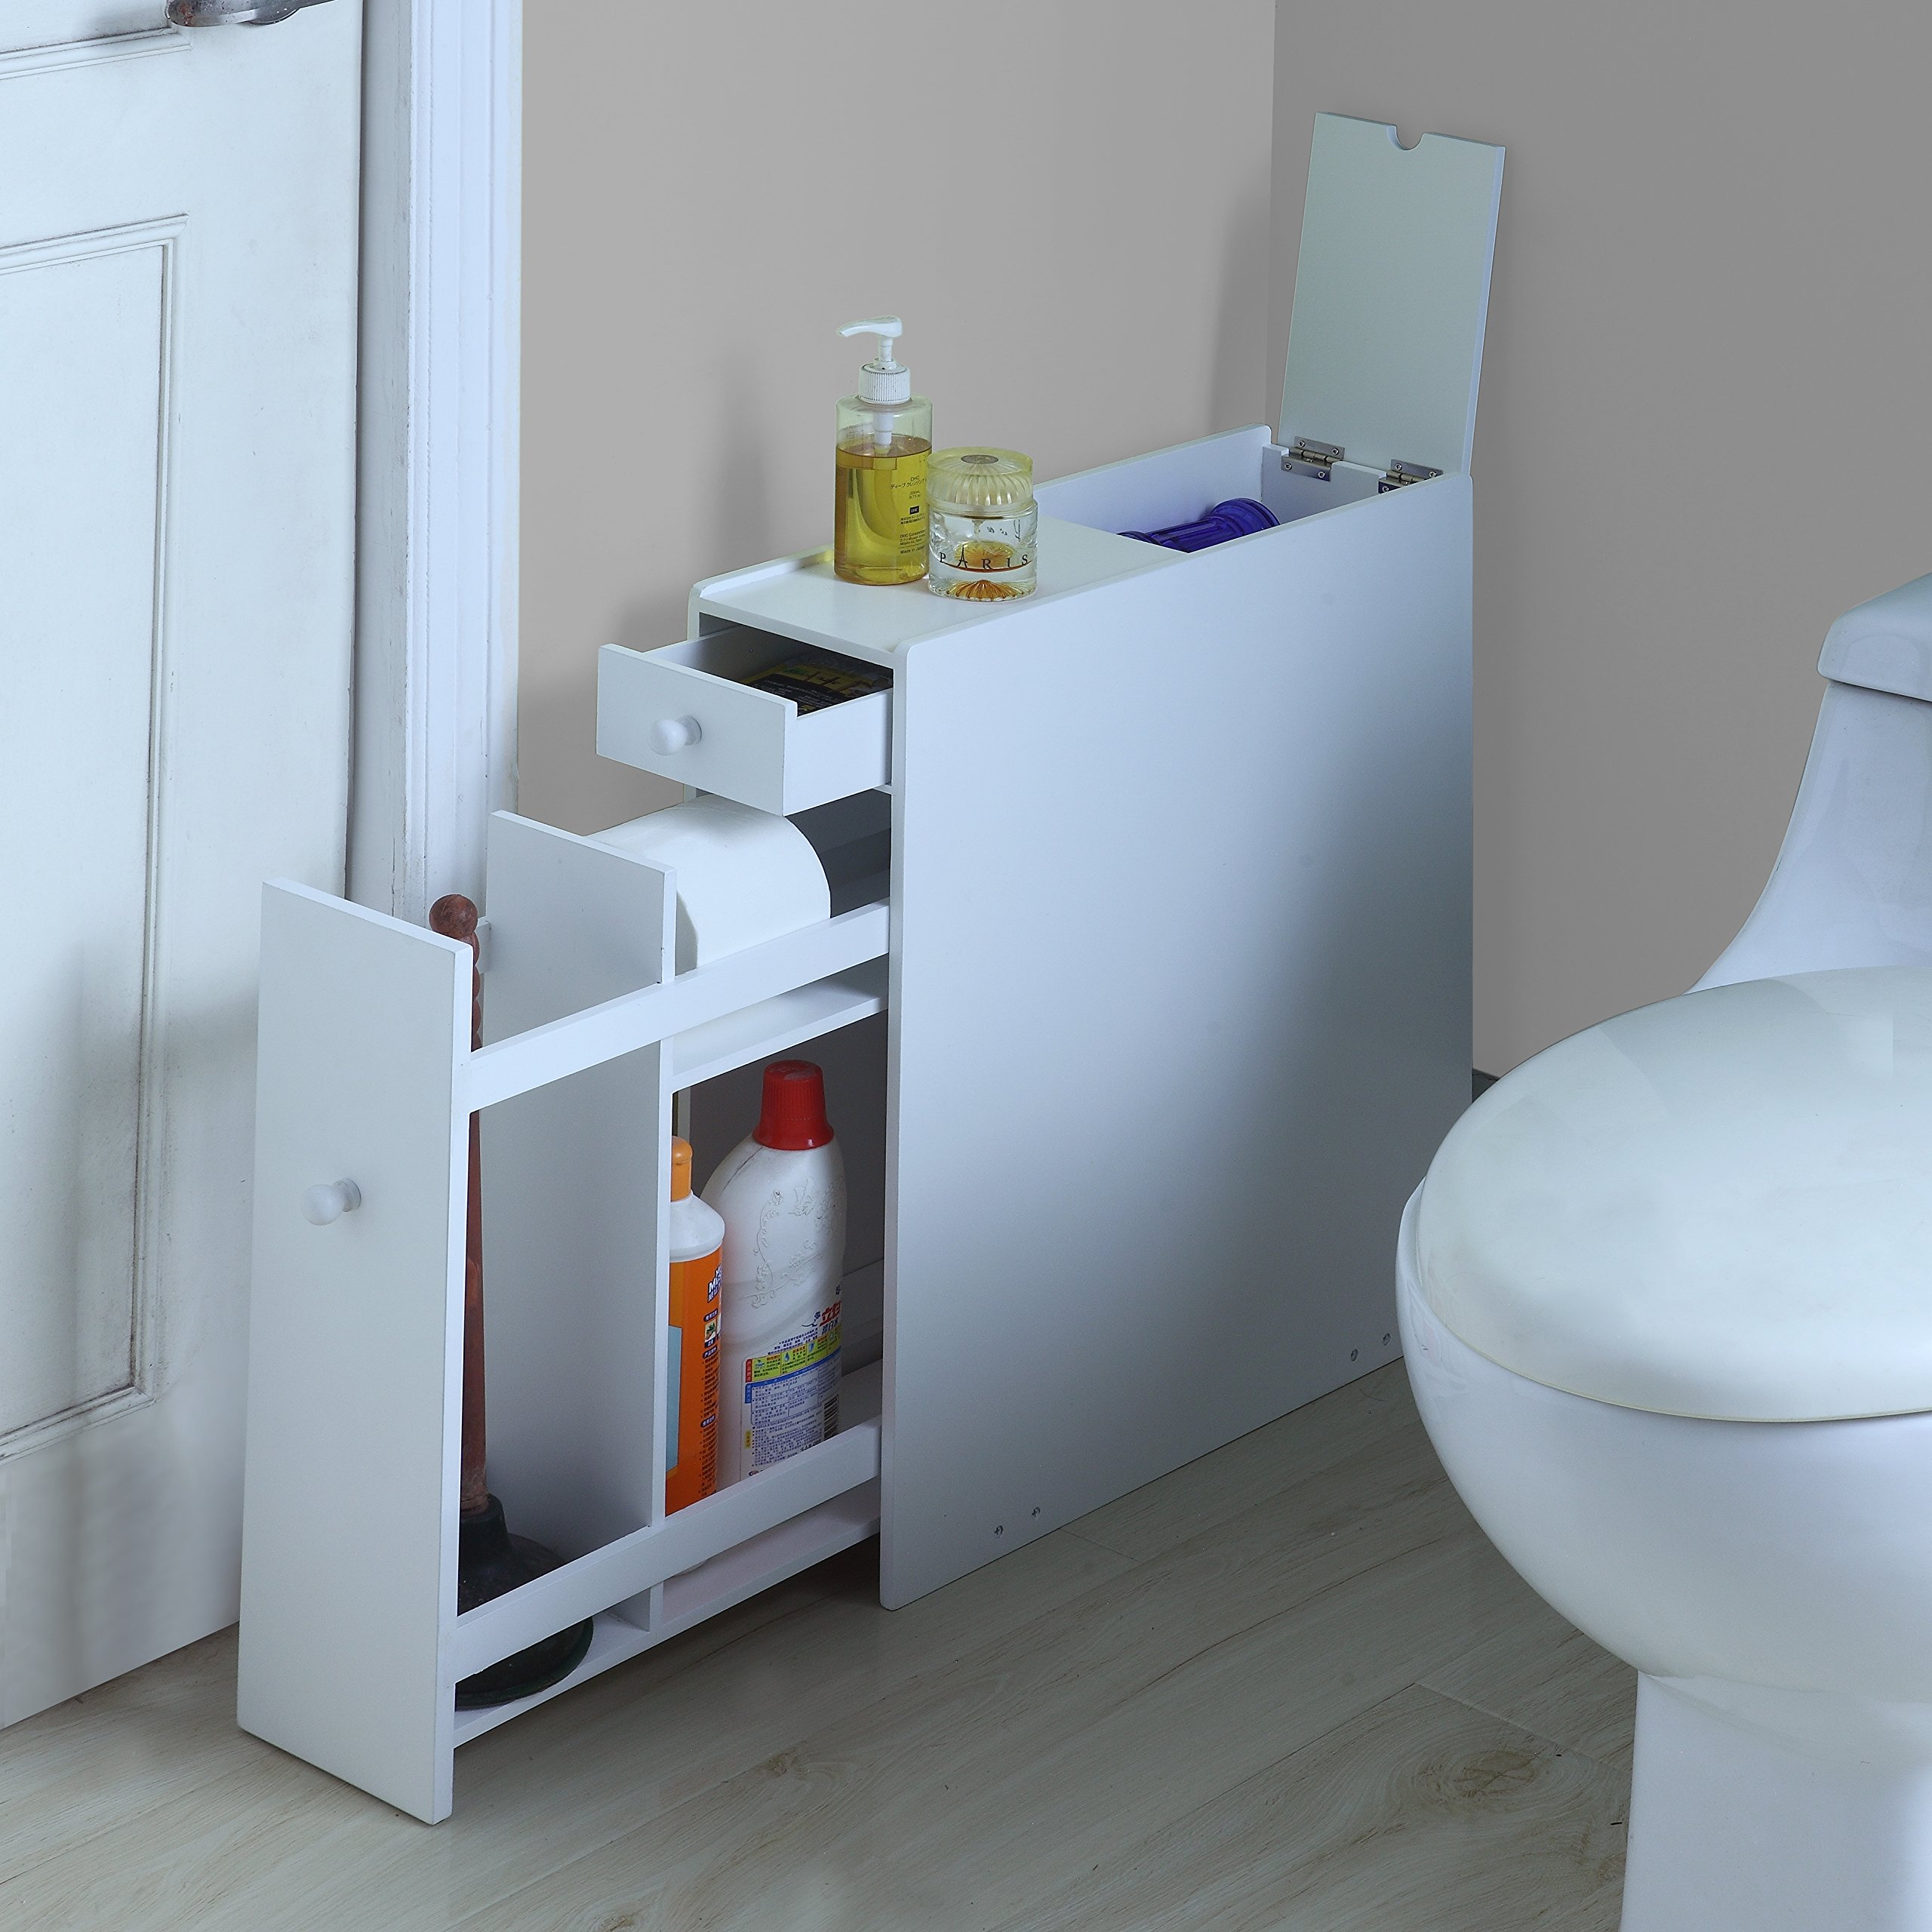 Proman Products Bathroom Floor Cabinet Wood in Pure White by Proman Products (Image #3)